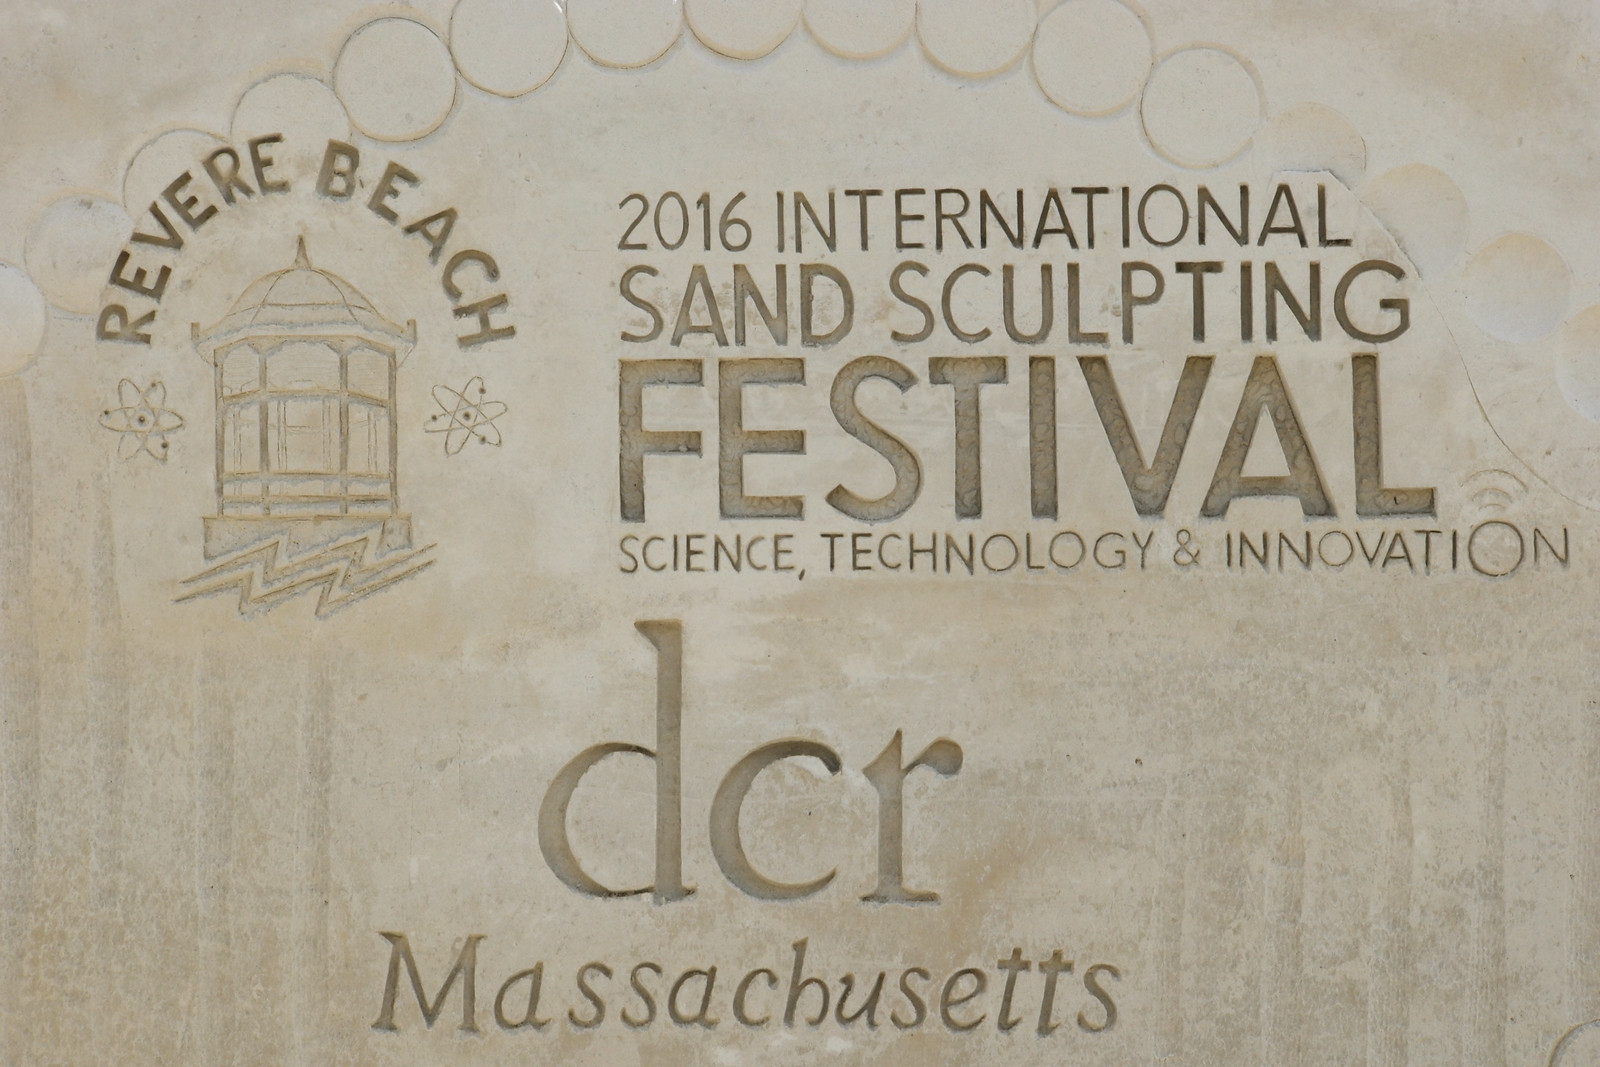 Revere Beach 2016 International Sand Sculpting FestivalInternational Sand Sculpting Festival